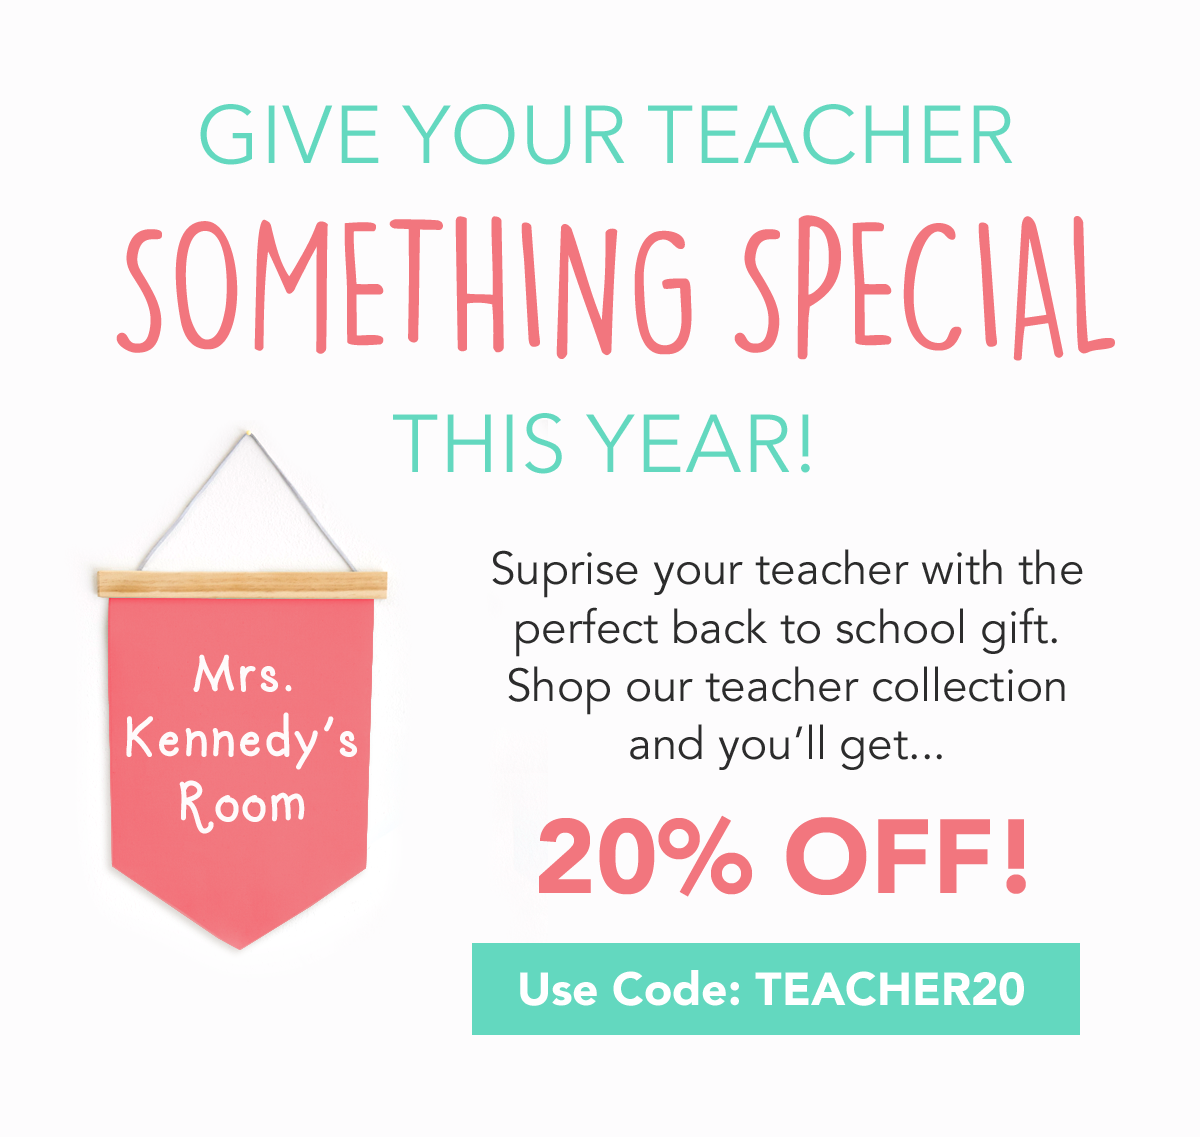 Last Chance to Shop Our Teacher Collection Sale - Label